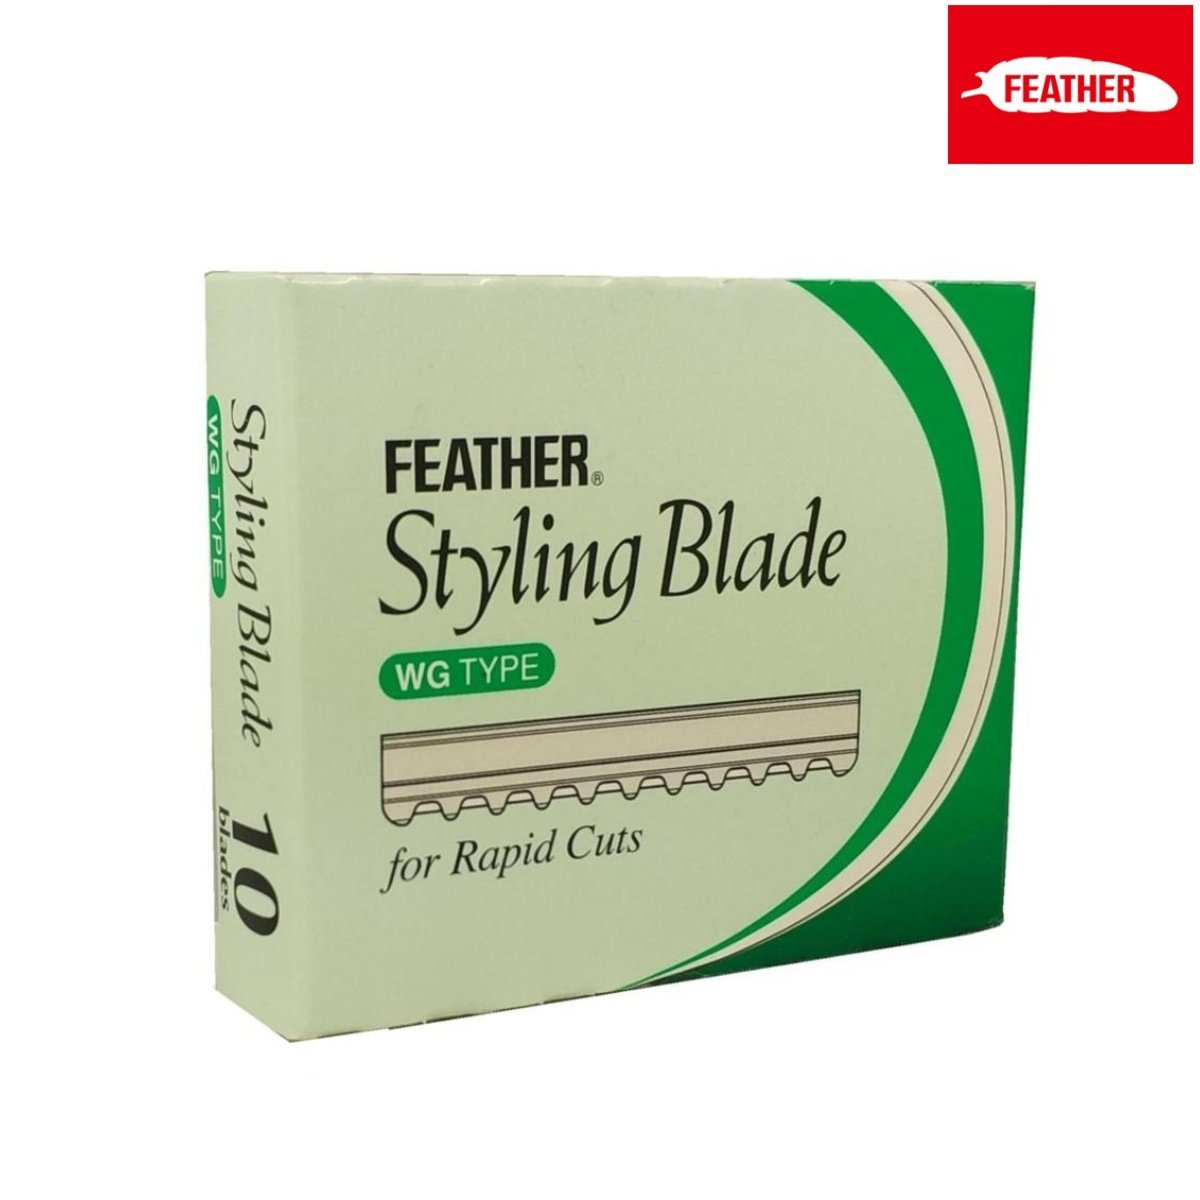 Feather WG Blades For Styling Razor - Japan Scissors